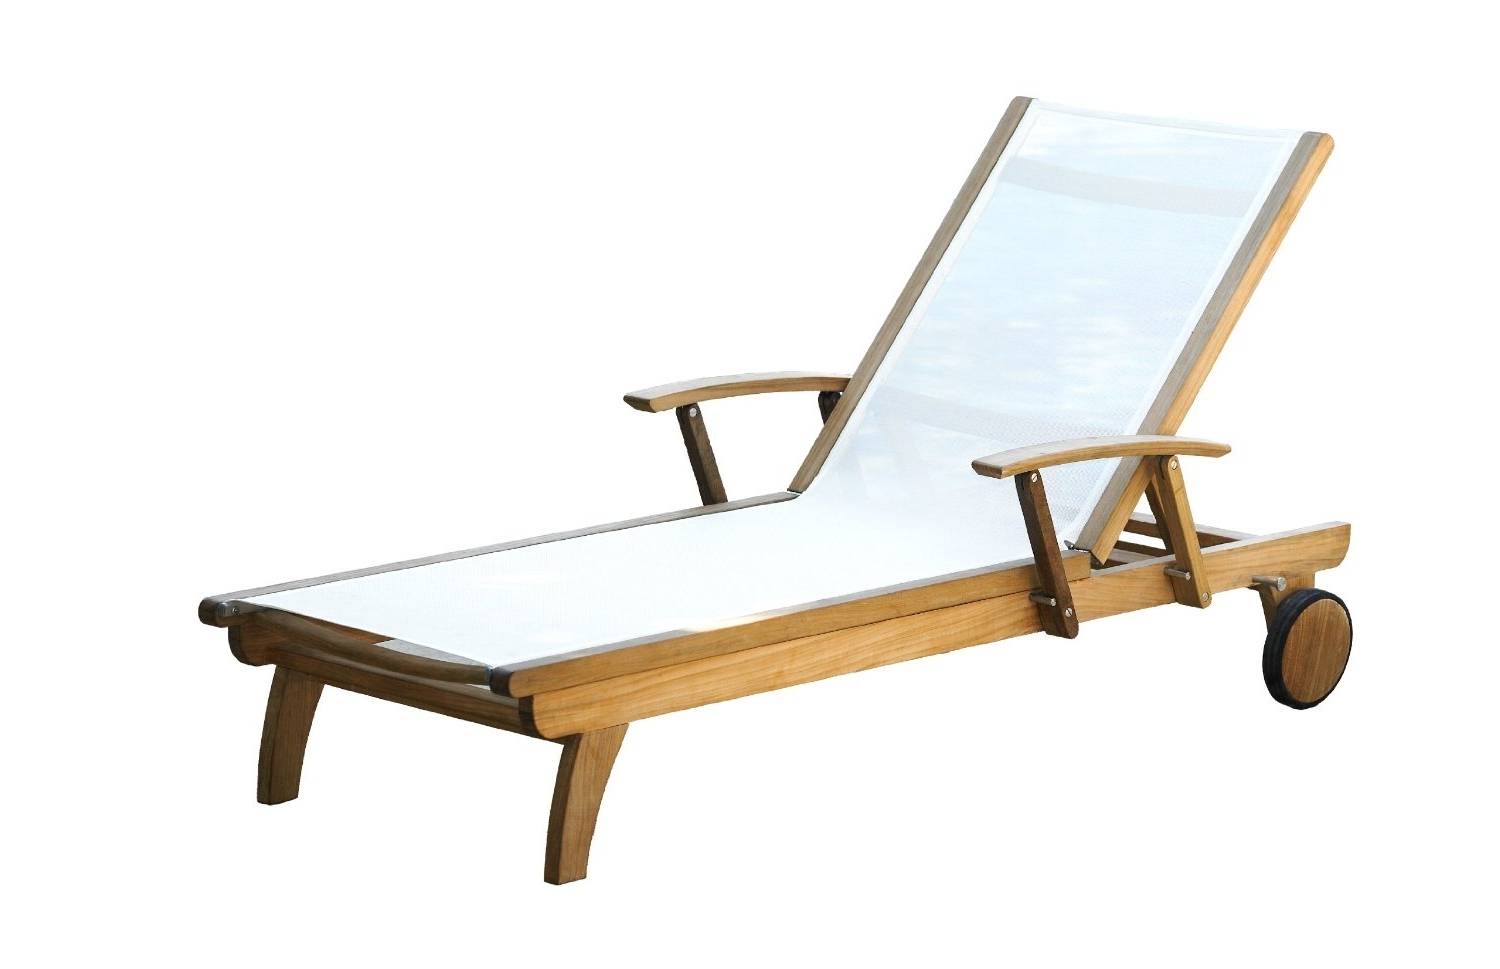 Outdoor Chaise Lounge Chairs With Arms Throughout Well Known Teak Chaise Lounge Chair – Teak Patio Furniture World (View 12 of 15)